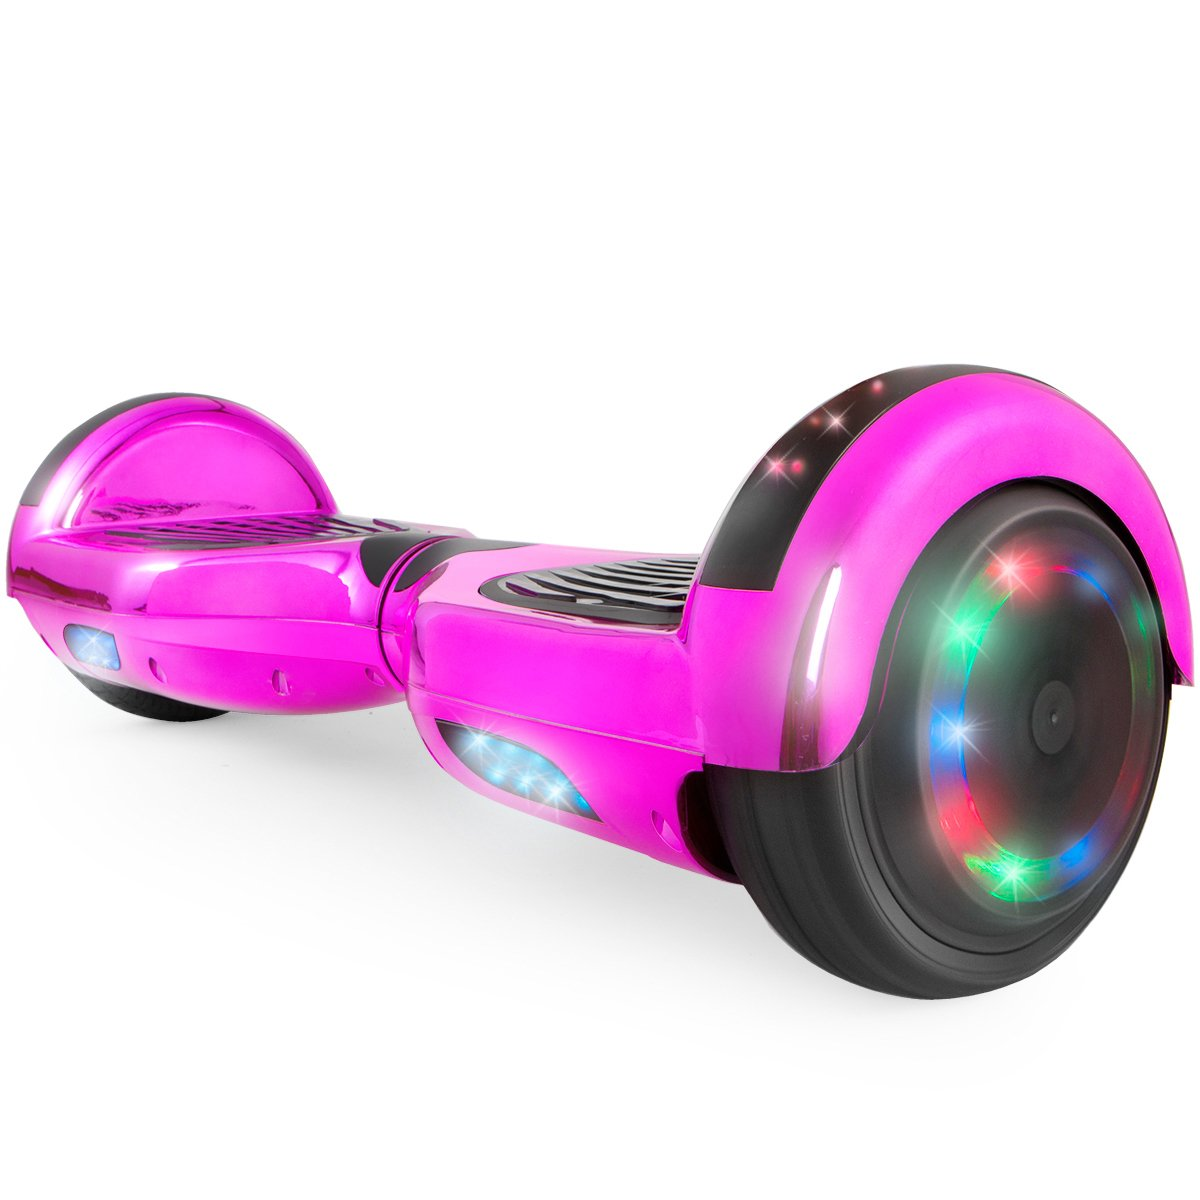 Self Balancing Scooter Hoverboard UL2272 Certified, w/ Bluetooth Speaker and LED Light (Pink) by XtremepowerUS